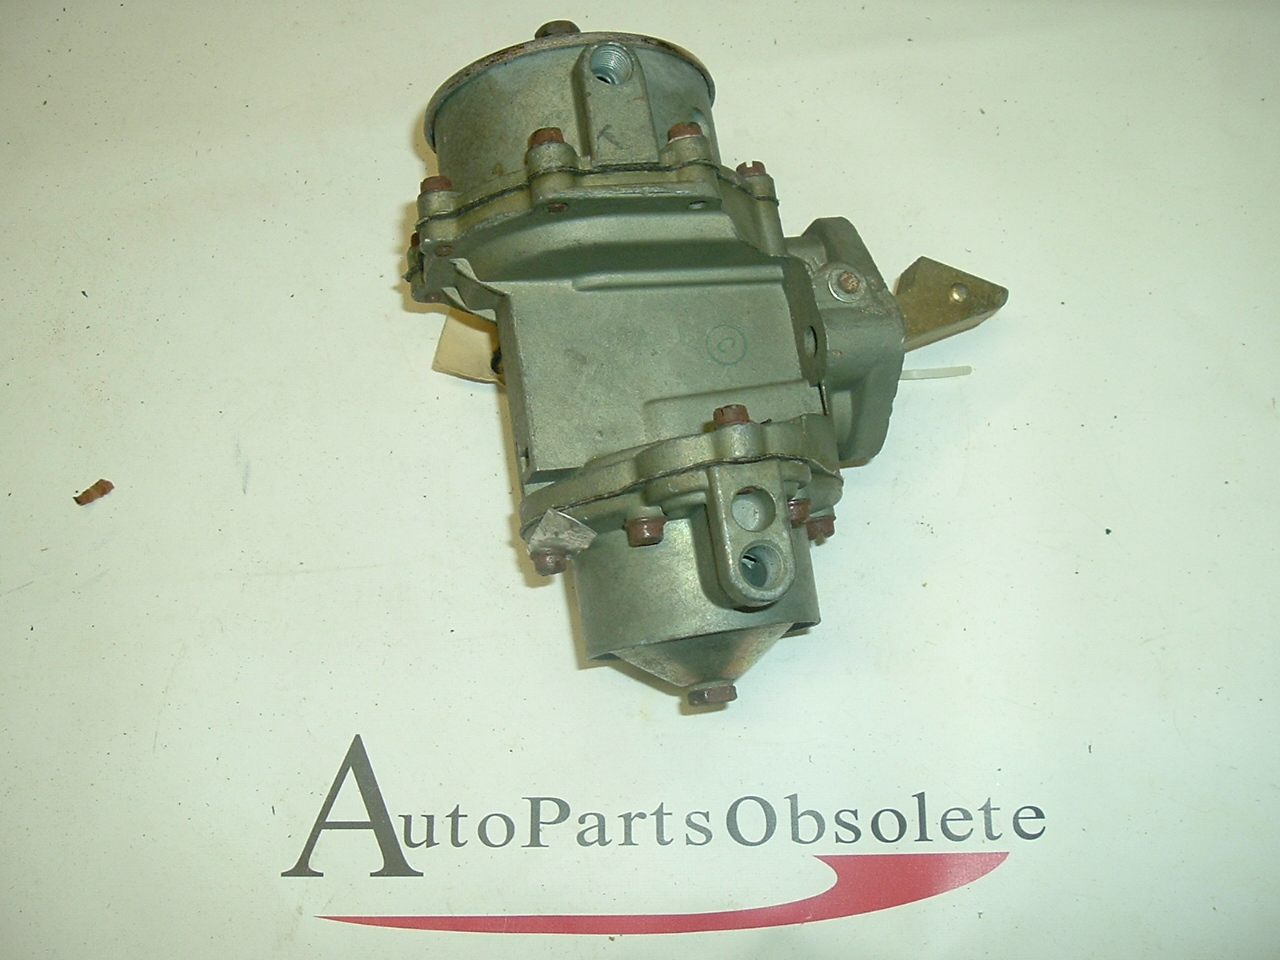 47- 65 Willys Kaiser Frazer double action fuel pump #9616 (a 9616a)